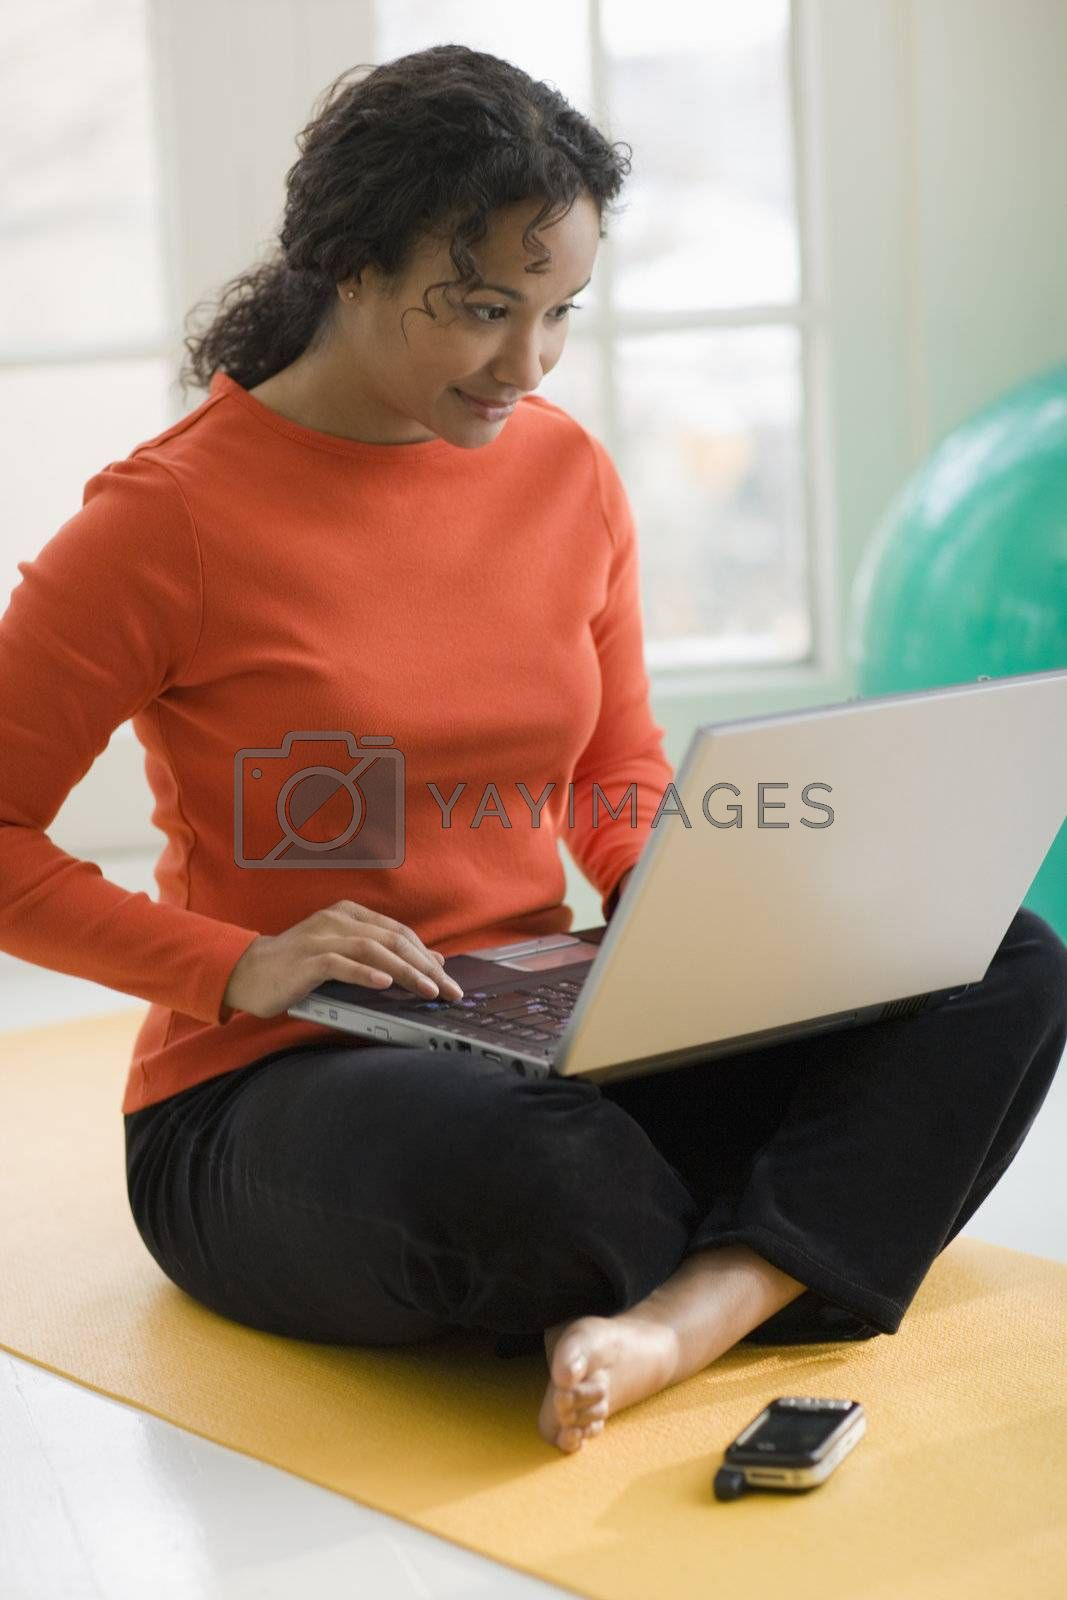 Beautiful young African American woman sitting on yoga mat using her laptop